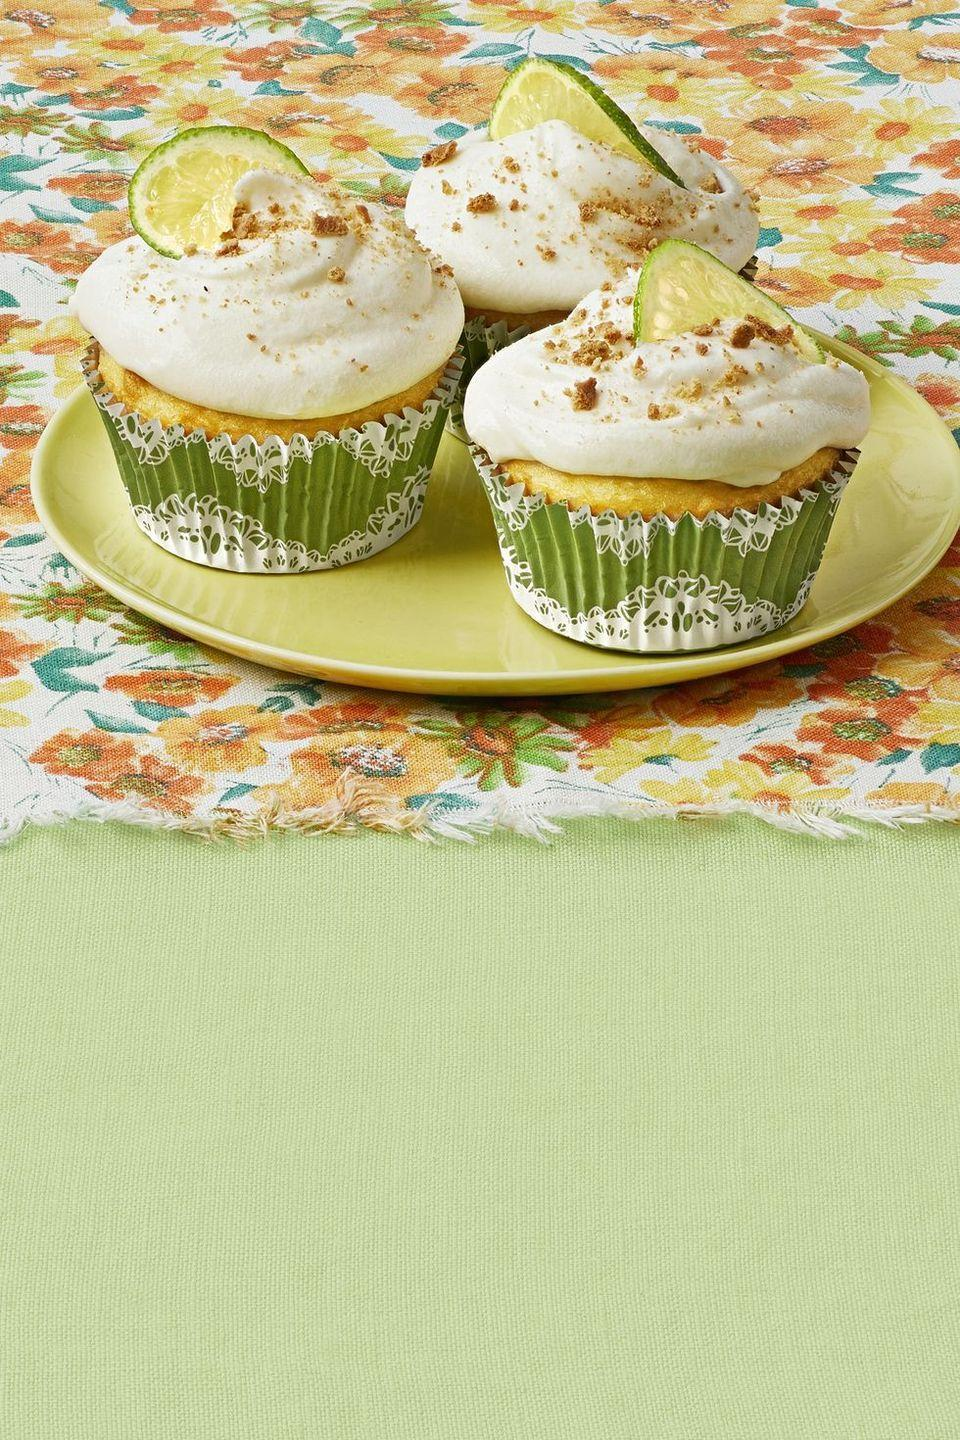 """<p>You can use a box cake mix to make these citrusy cupcakes. There's Key lime in the cake and frosting to pack a ton of flavor.</p><p><strong><a href=""""https://www.thepioneerwoman.com/food-cooking/recipes/a32973429/key-lime-pie-cupcakes-recipe/"""" rel=""""nofollow noopener"""" target=""""_blank"""" data-ylk=""""slk:Get the recipe."""" class=""""link rapid-noclick-resp"""">Get the recipe.</a></strong></p><p><strong><a class=""""link rapid-noclick-resp"""" href=""""https://go.redirectingat.com?id=74968X1596630&url=https%3A%2F%2Fwww.walmart.com%2Fbrowse%2Fhome%2Ffood-prep%2F4044_623679_133020_642199%3Ffacet%3Dbrand%253AThe%2BPioneer%2BWoman&sref=https%3A%2F%2Fwww.thepioneerwoman.com%2Ffood-cooking%2Fmeals-menus%2Fg35139389%2Fvalentines-day-cupcake-ideas%2F"""" rel=""""nofollow noopener"""" target=""""_blank"""" data-ylk=""""slk:SHOP MIXING BOWLS"""">SHOP MIXING BOWLS</a><br></strong></p>"""